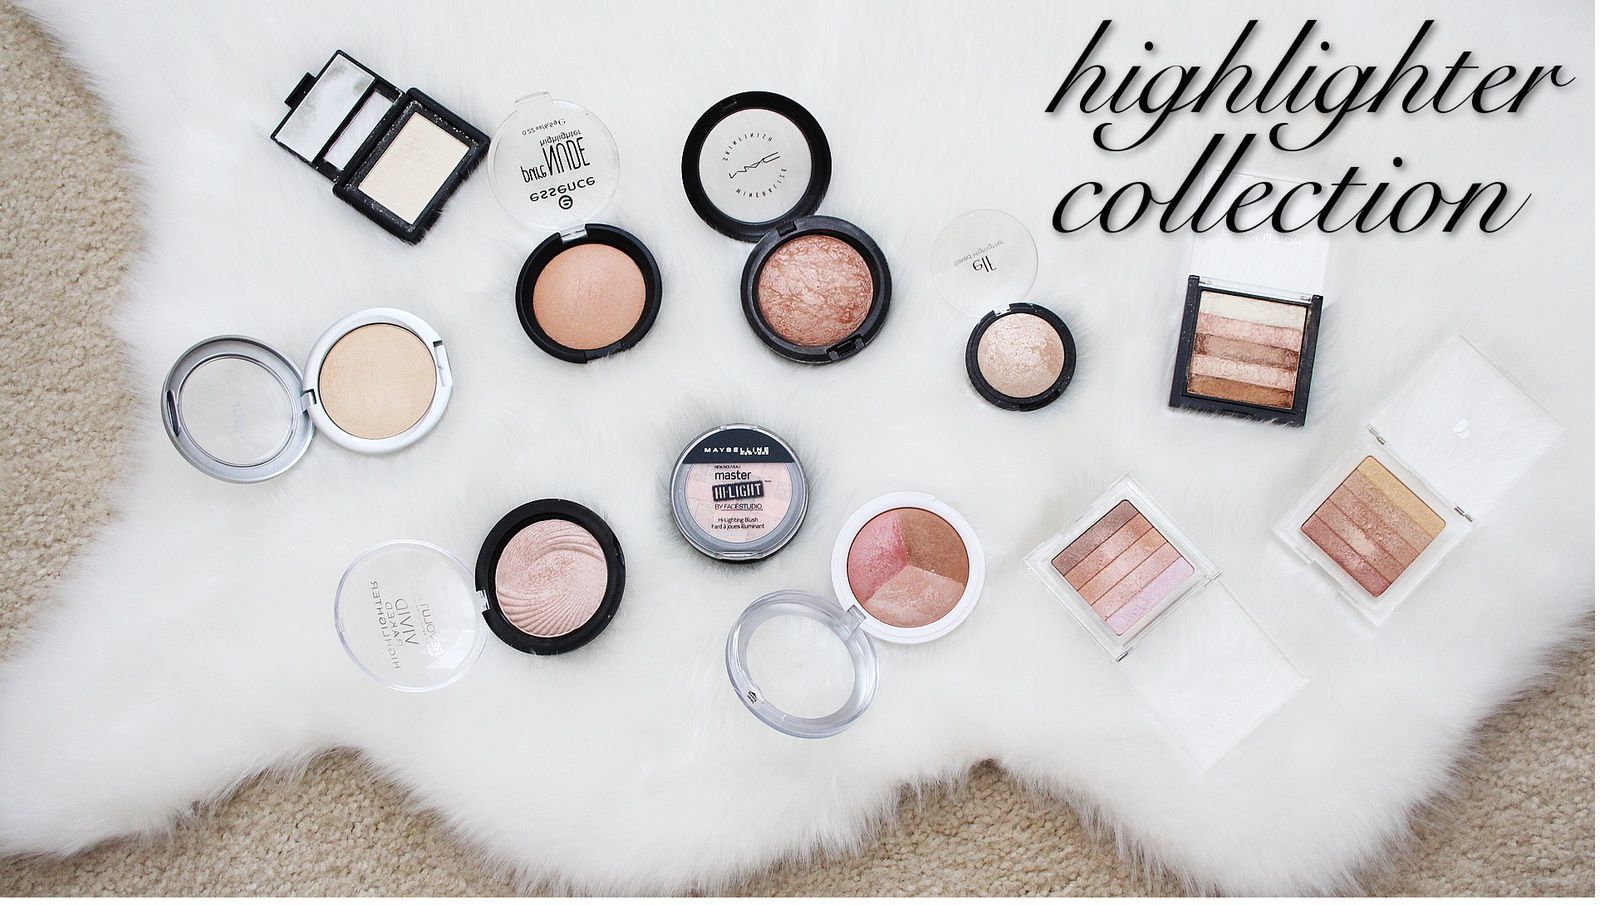 My Highlighter Collection | Makeup Collection Part 2